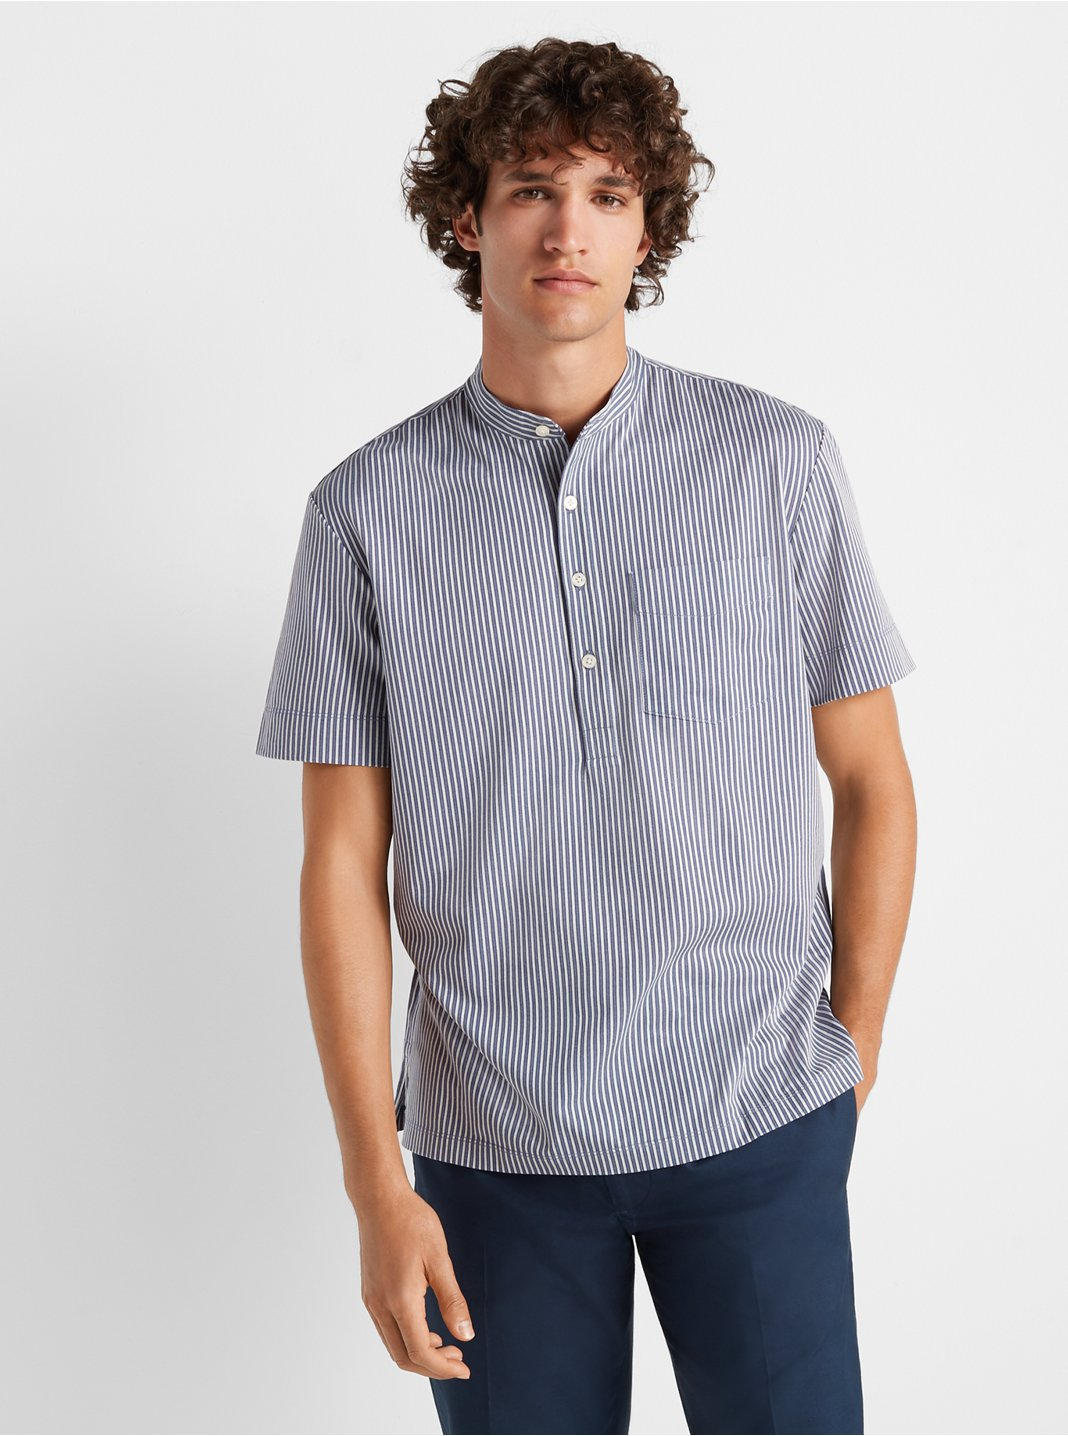 Short Sleeve Striped Popover